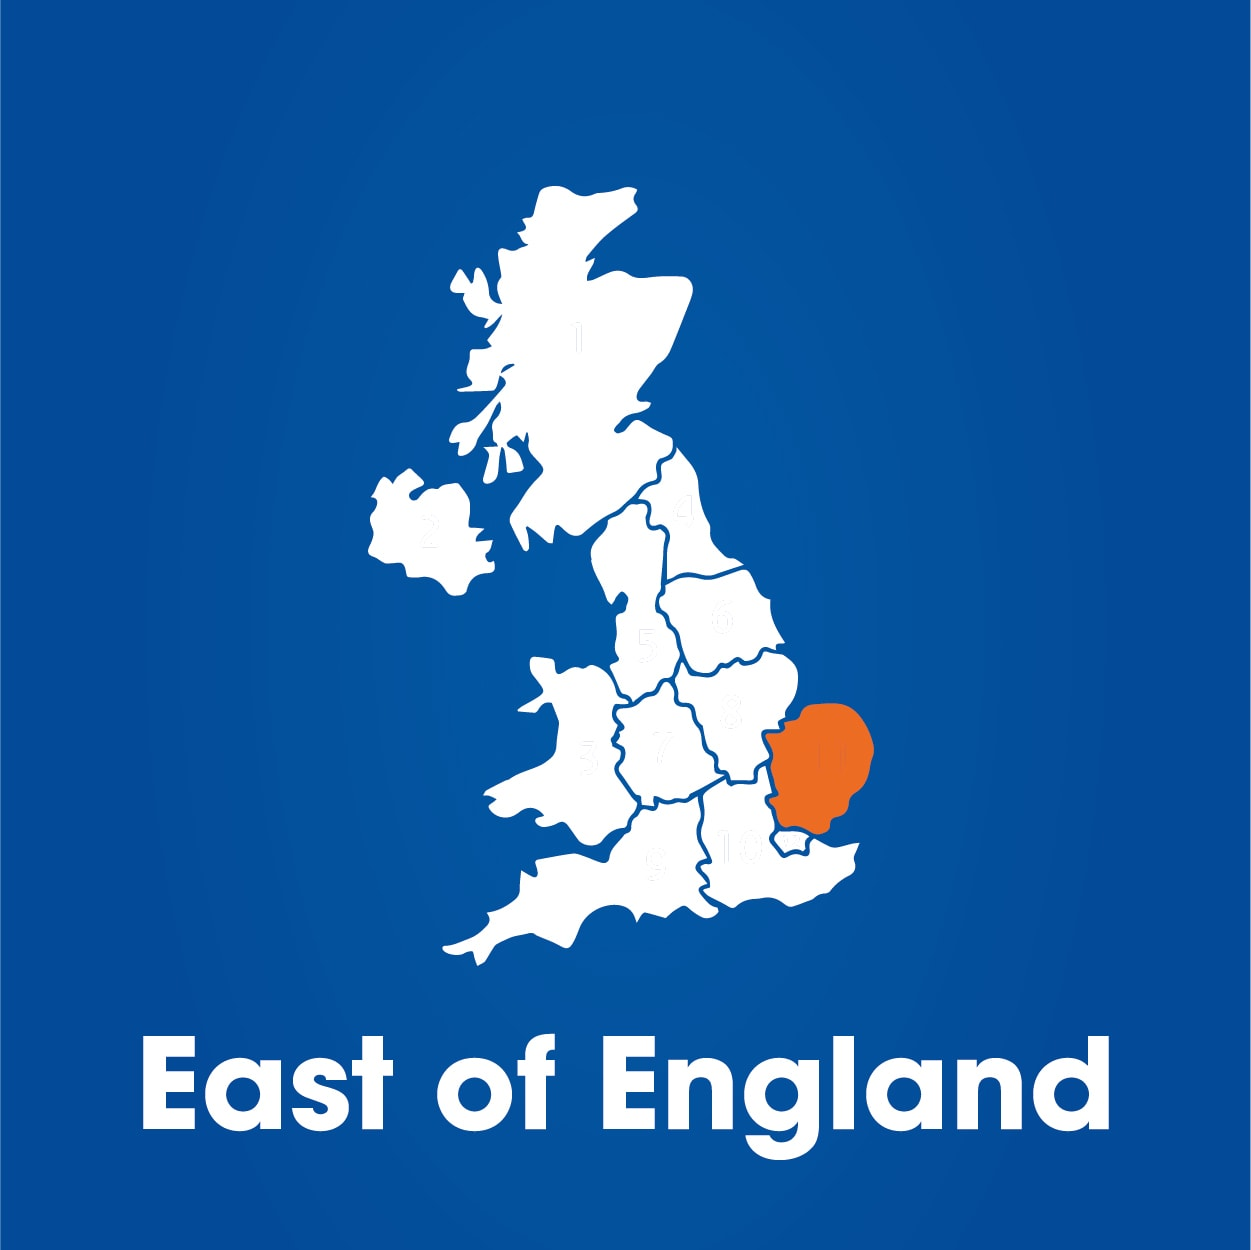 East of England region highlighted on map of UK